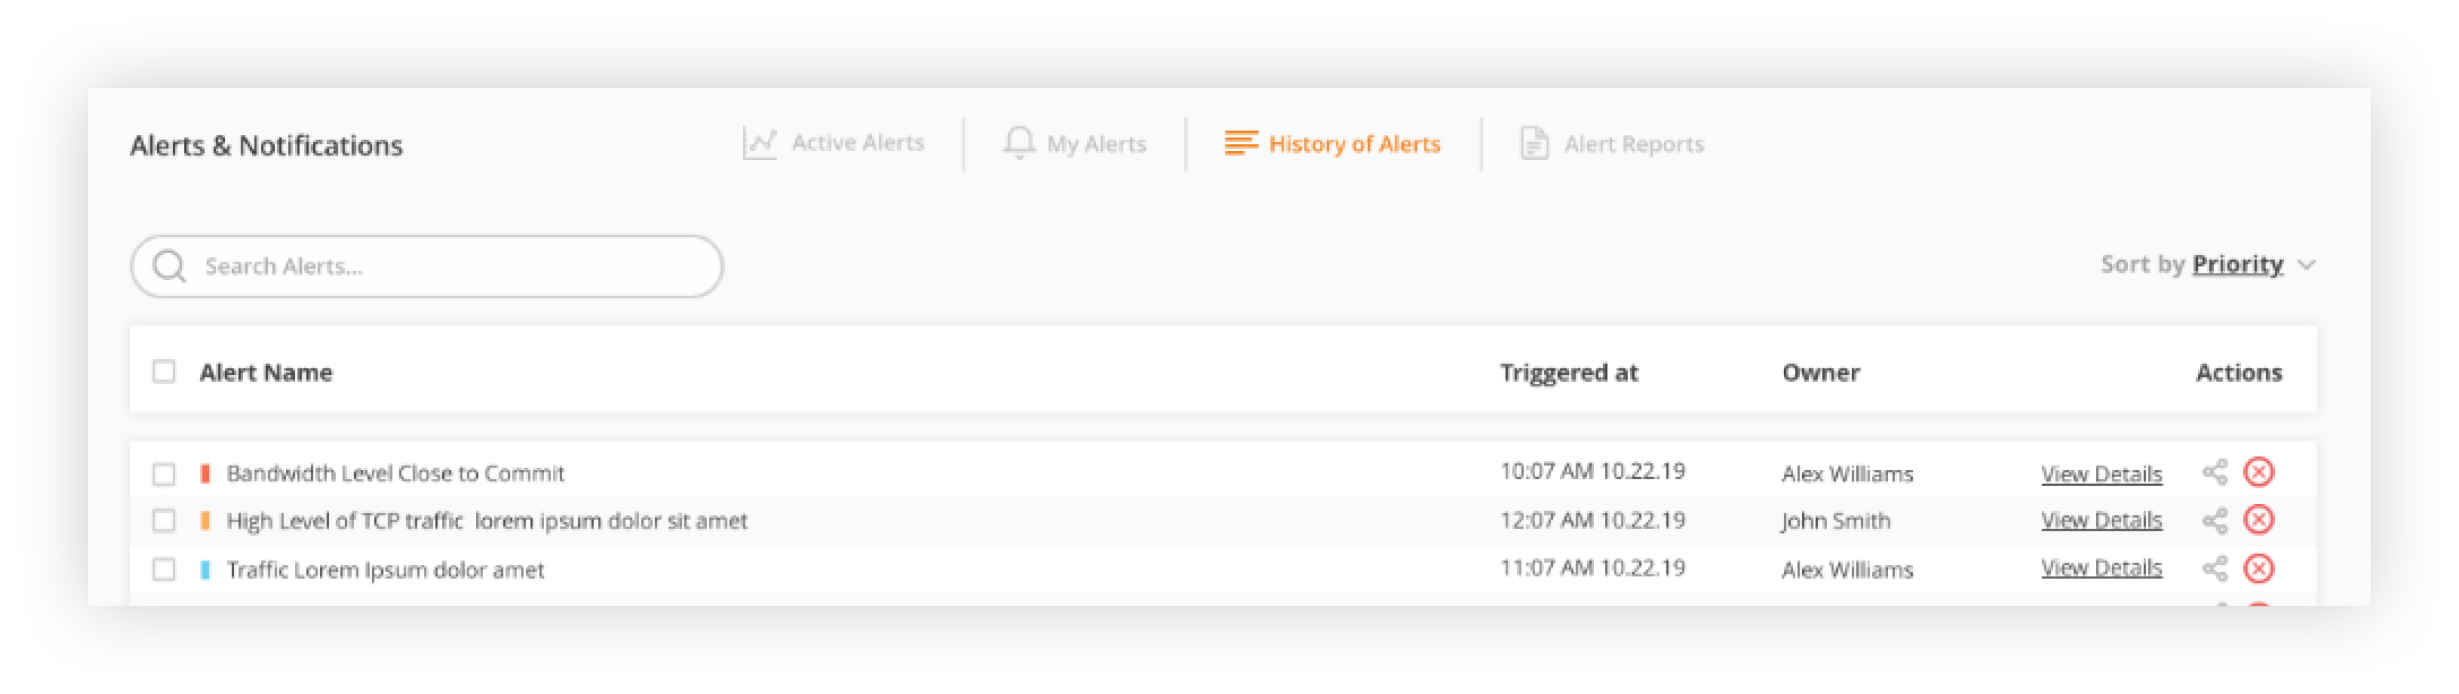 history of alerts